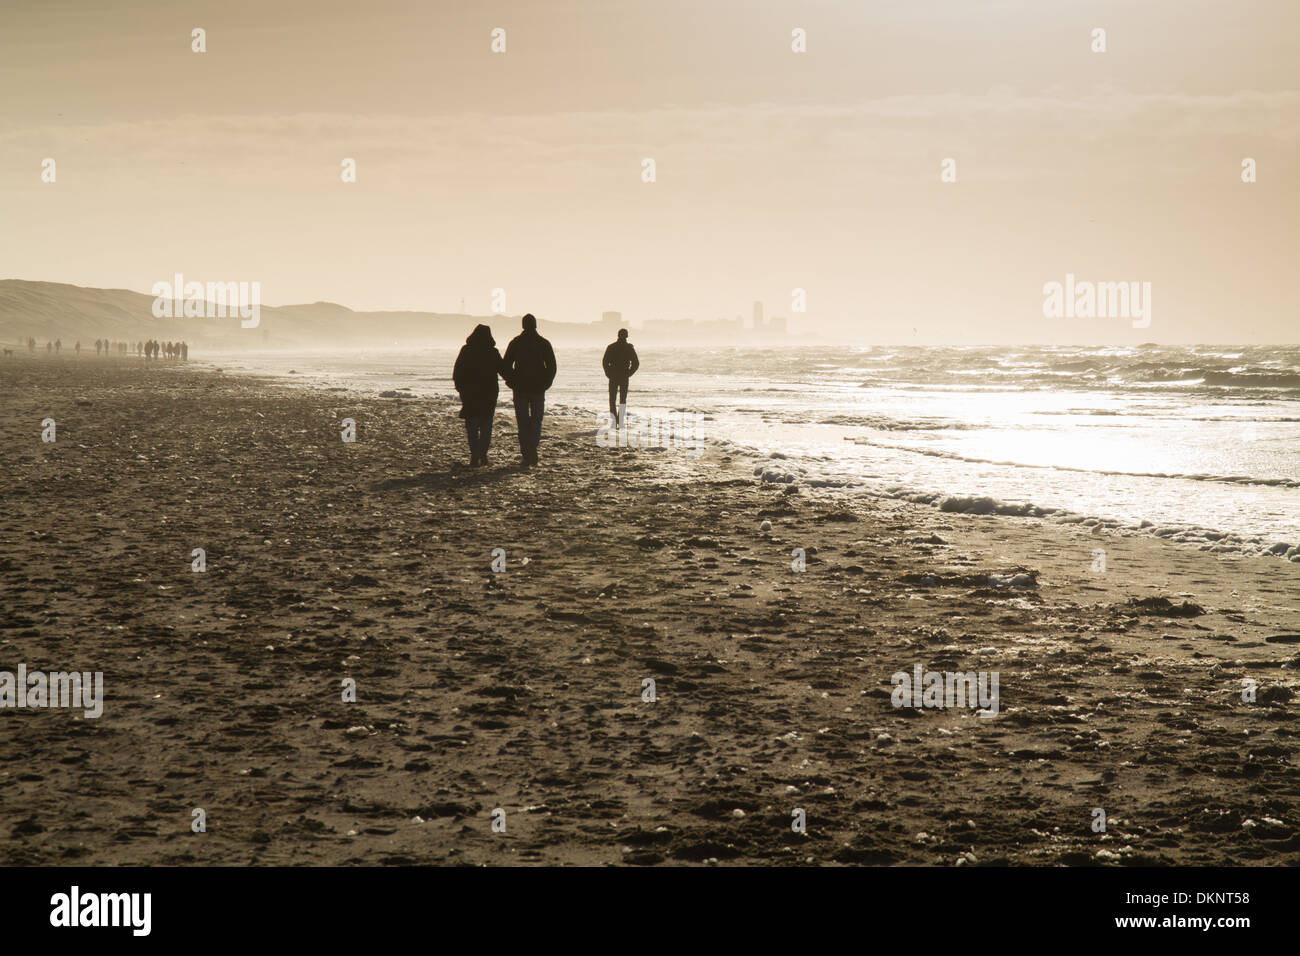 Walkers on the beach at the dutch north sea coastline - Stock Image